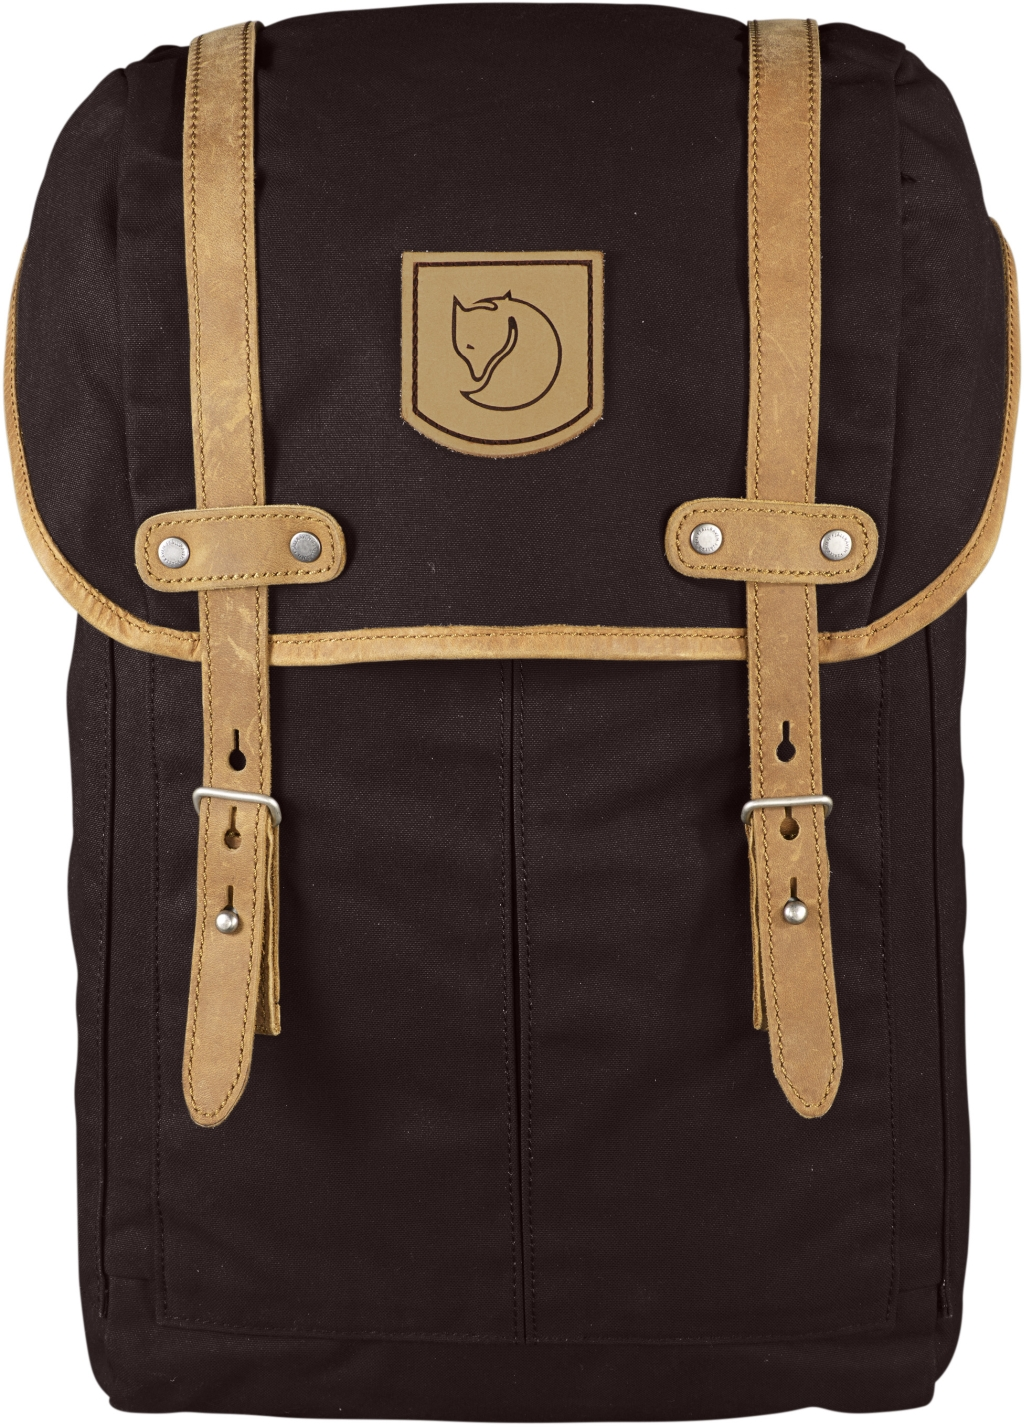 FjallRaven Rucksack No.21 Small Hickory Brown-30